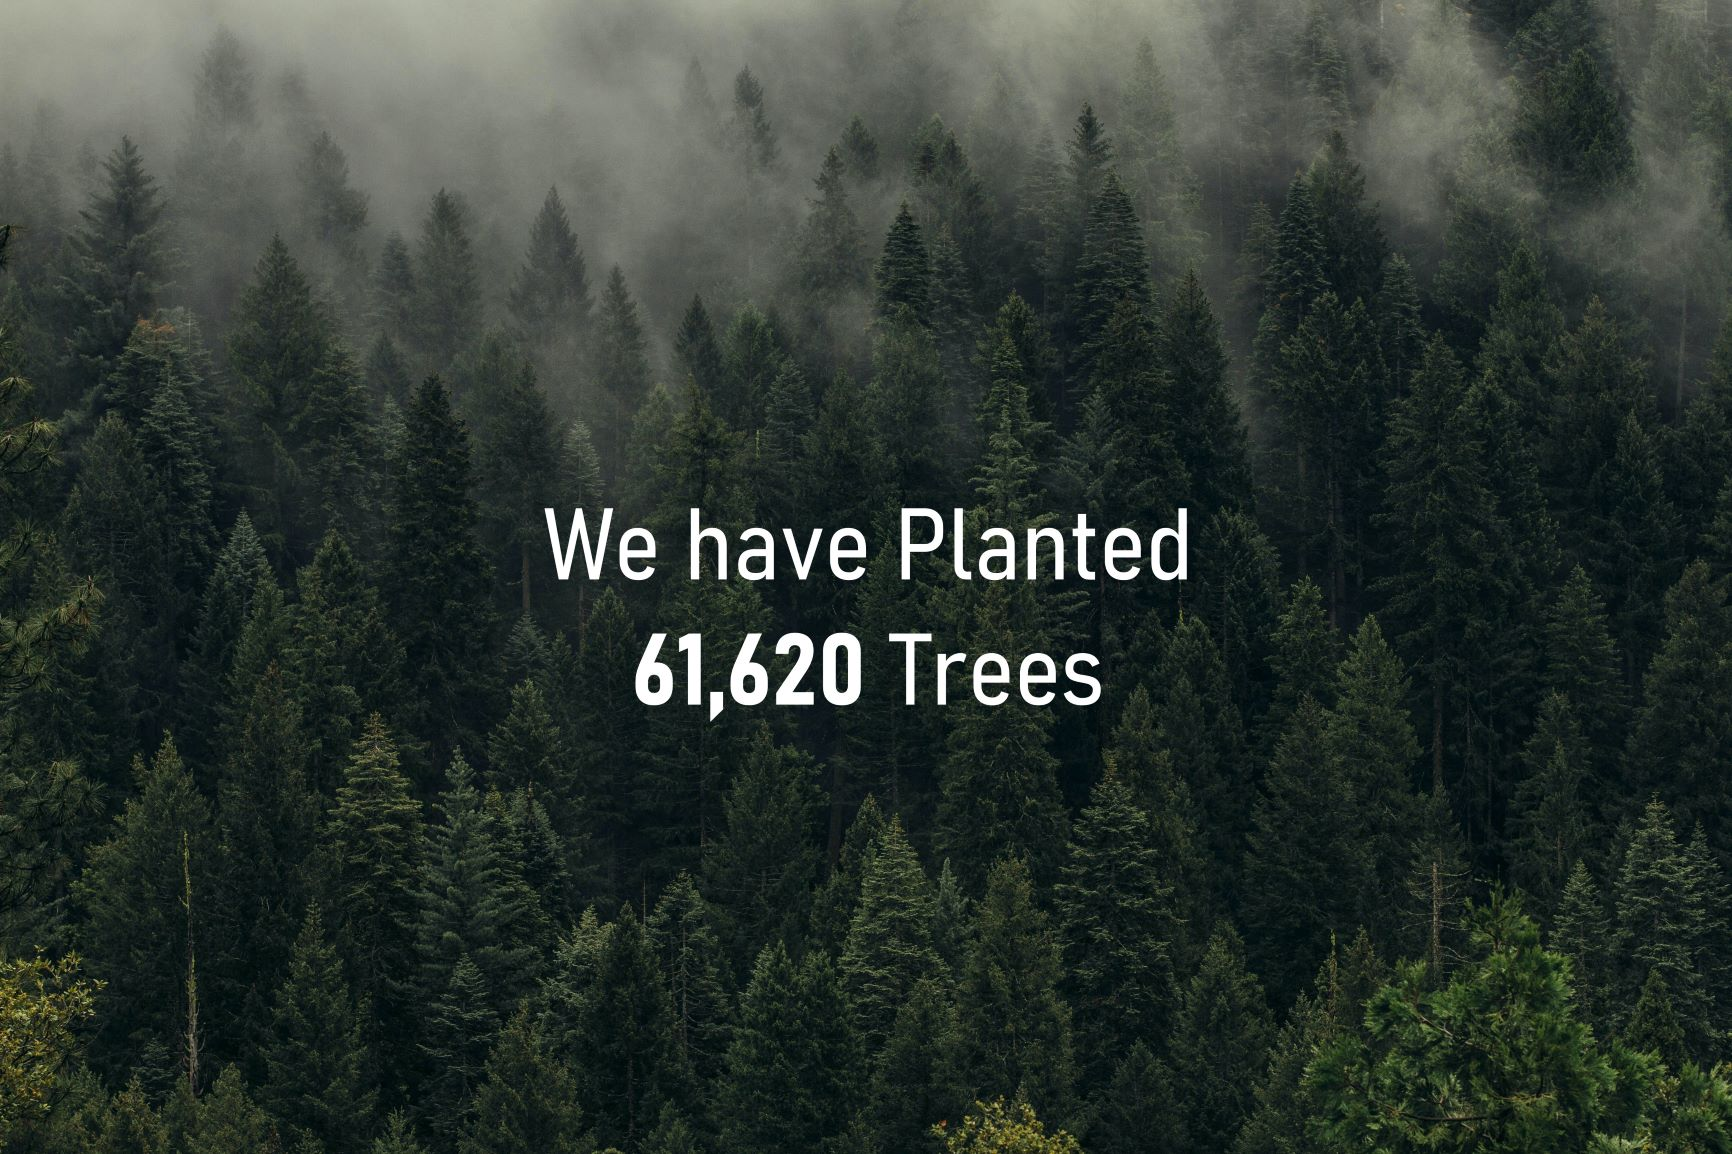 4 Trees planted for every product sold